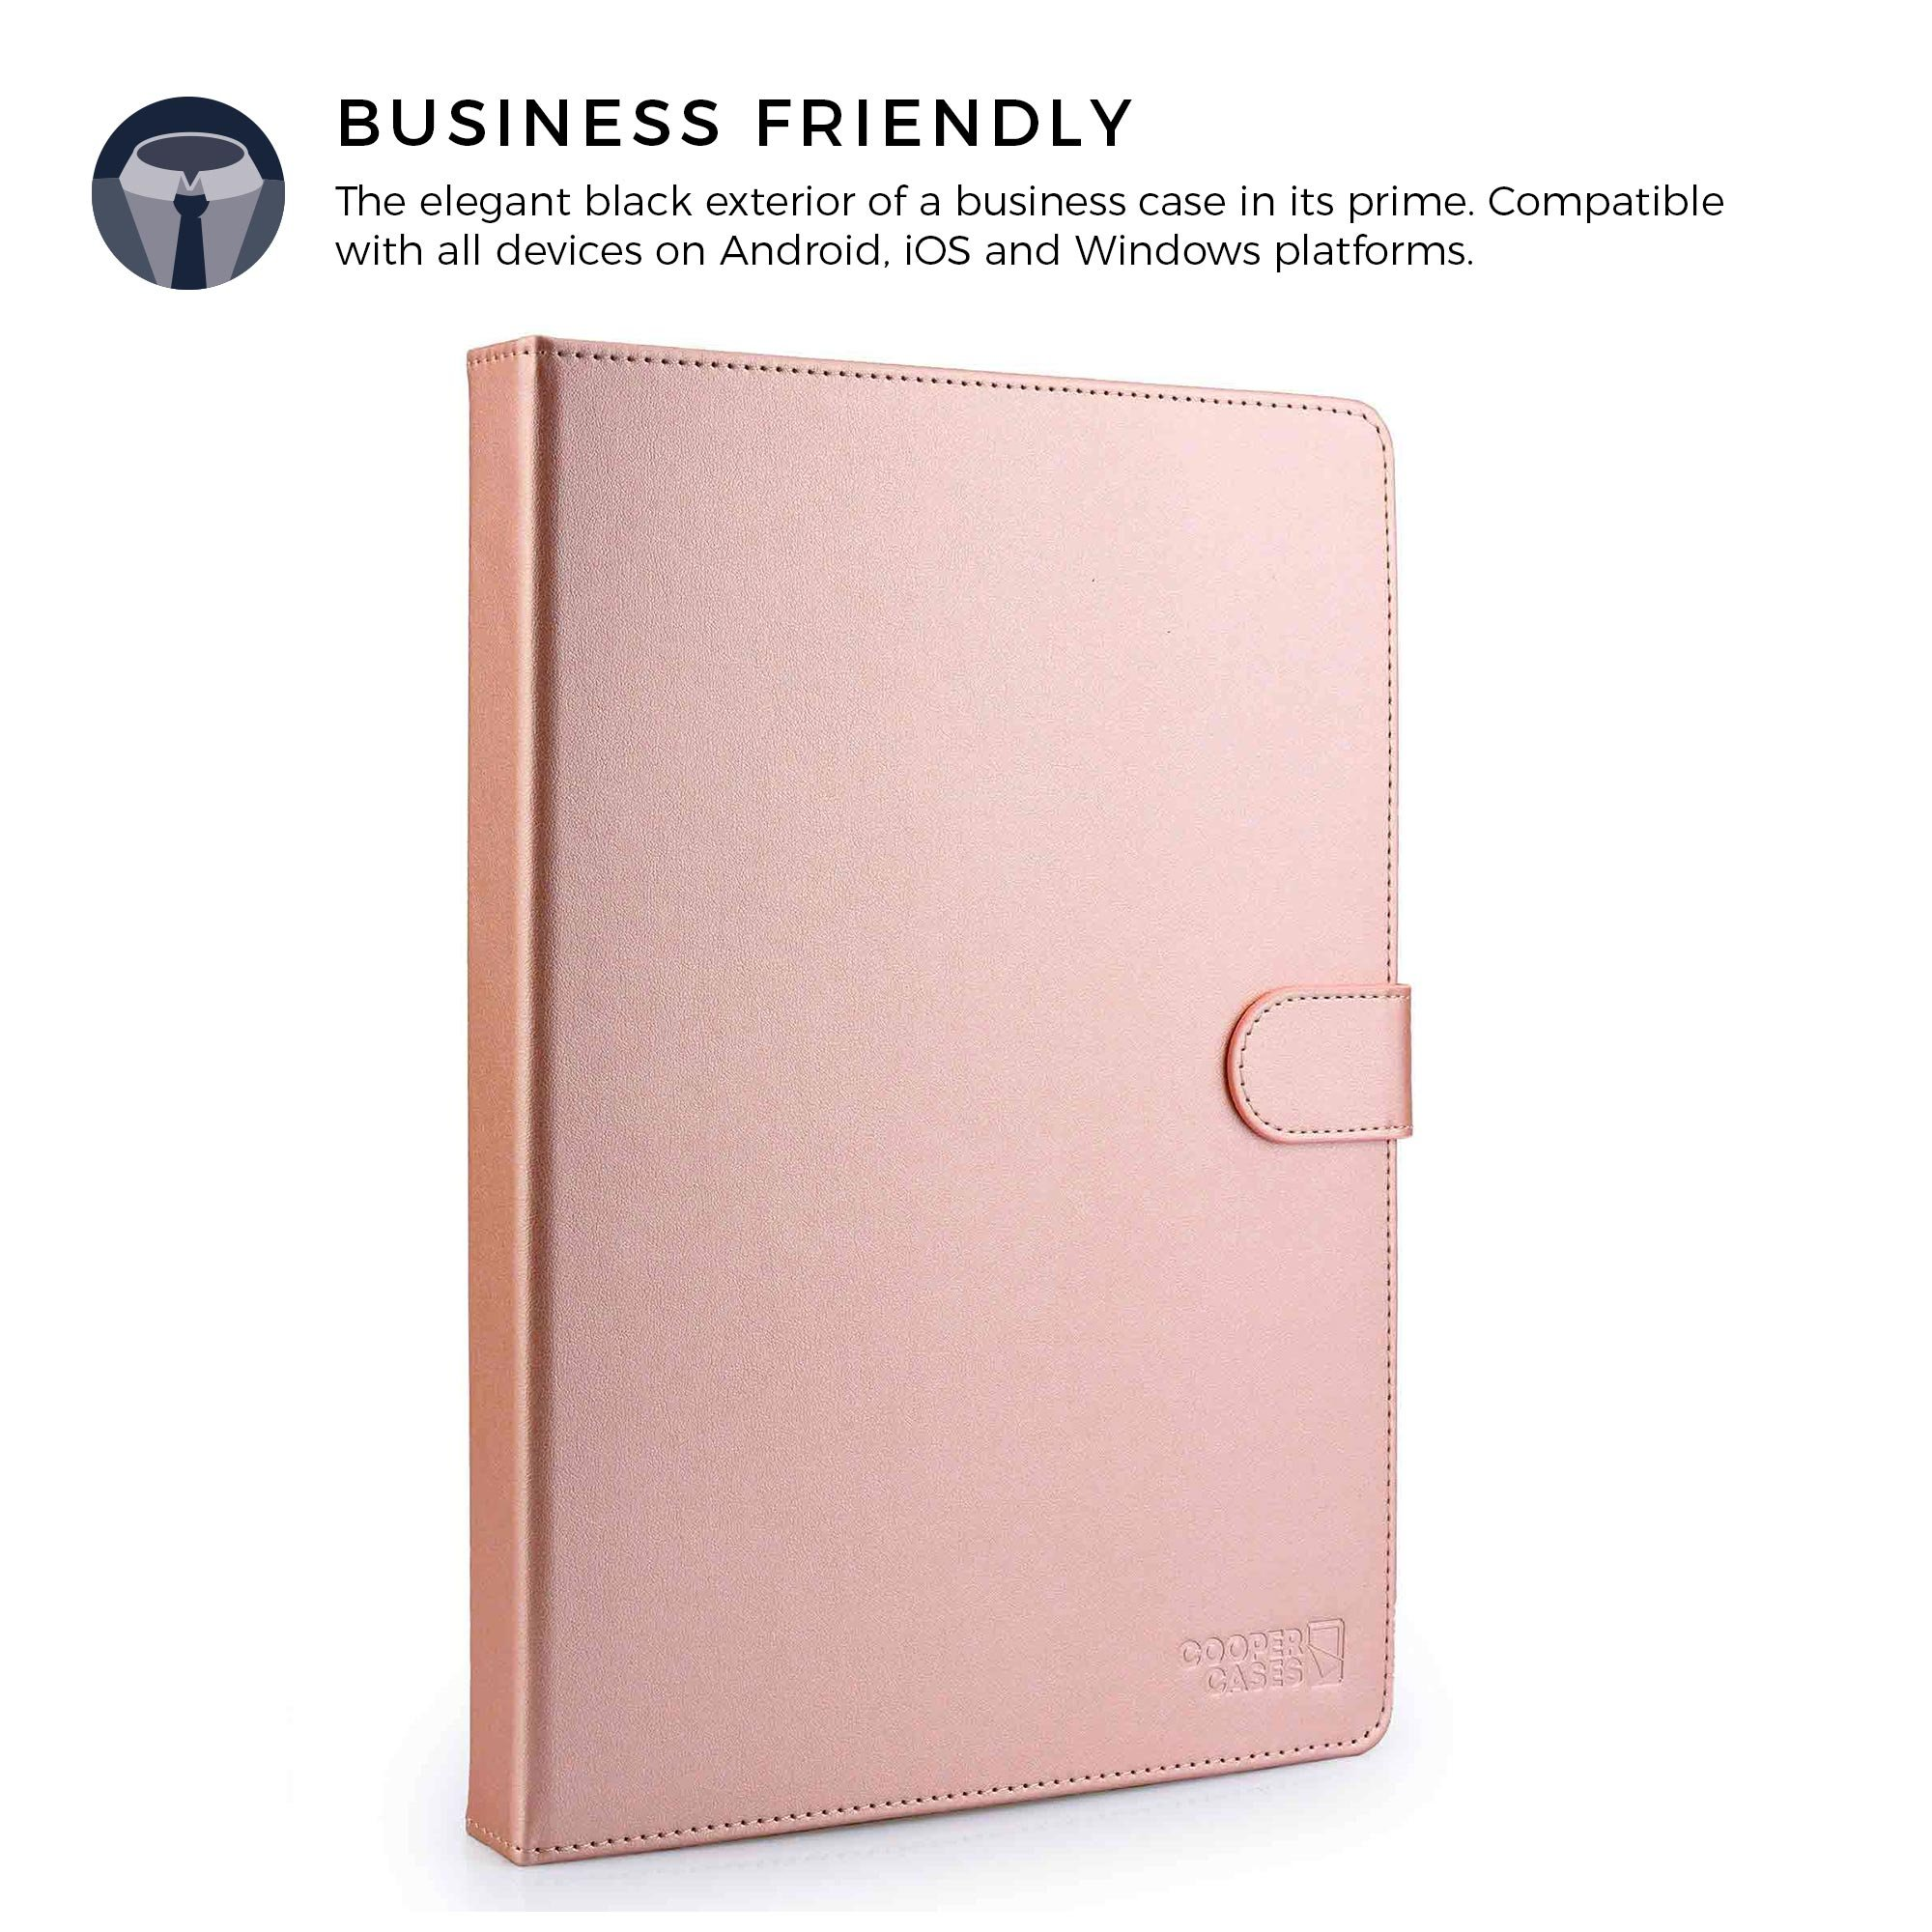 COOPER BACKLIGHT EXECUTIVE Keyboard case for 9'', 10'', 10.1'' inch tablets   2-in-1 Bluetooth Wireless Backlit Keyboard & Leather Folio Cover   7 Color LED Keys, 100HR Battery, 14 Hotkeys (Rose Gold) by Cooper Cases (Image #5)